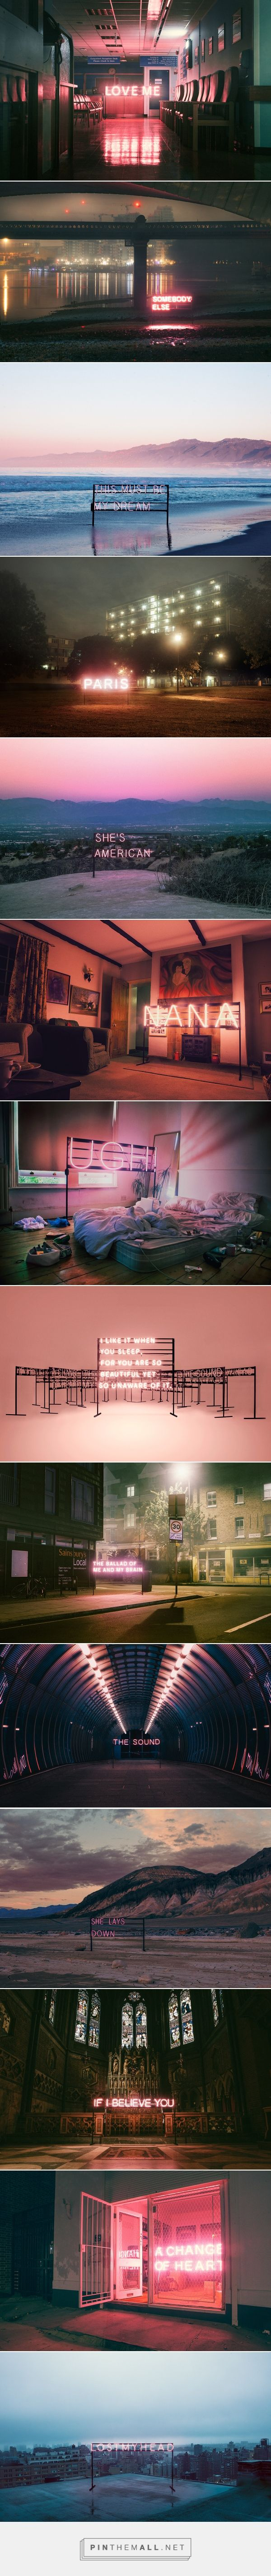 The 1975: Neon Signs on Behance - created via https://pinthemall.net